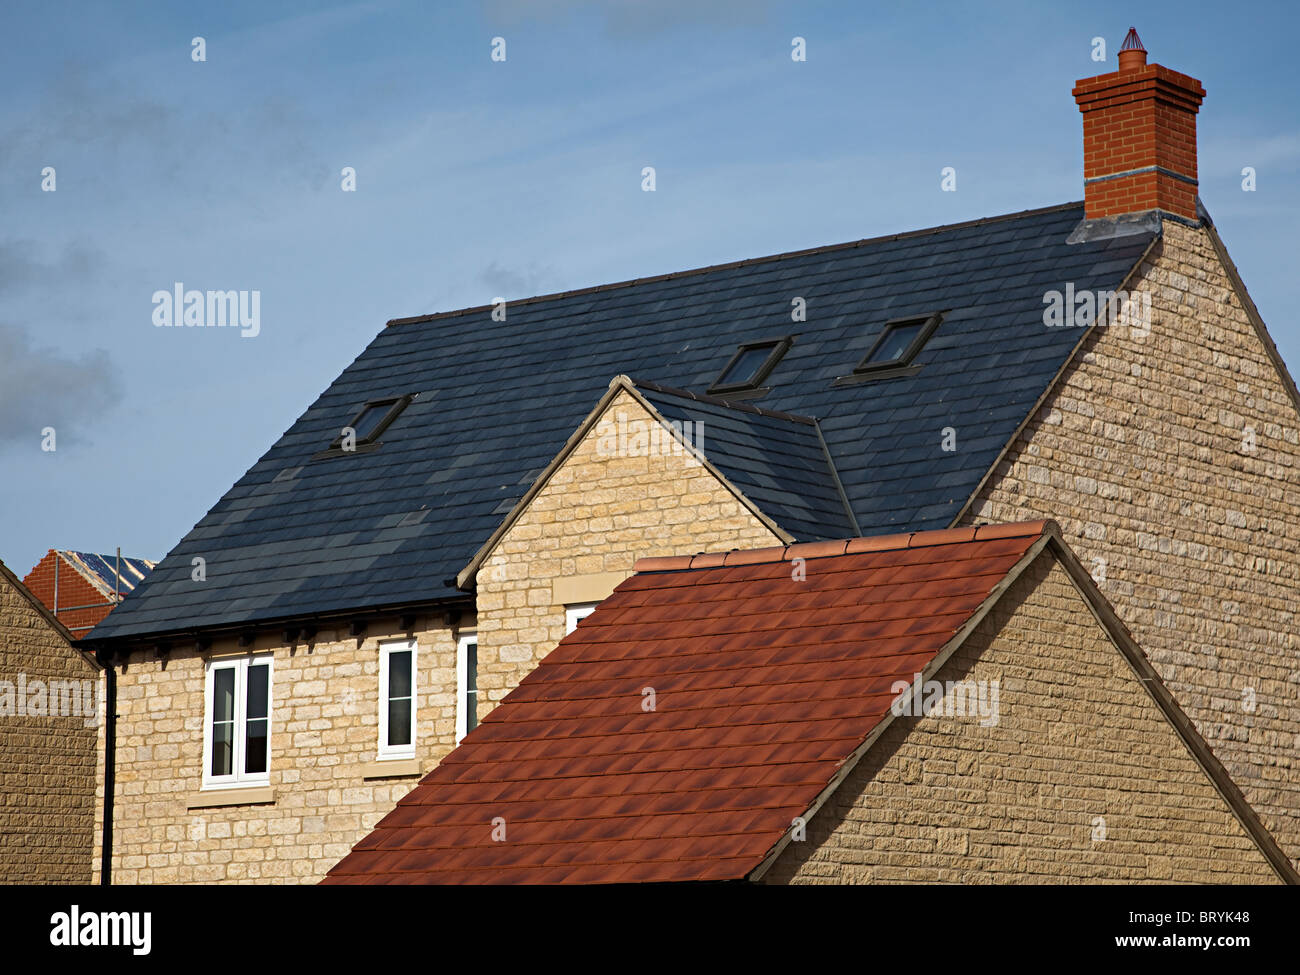 Roofs with different tile colours on new build houses Woodstock Oxfordshire England UK - Stock Image